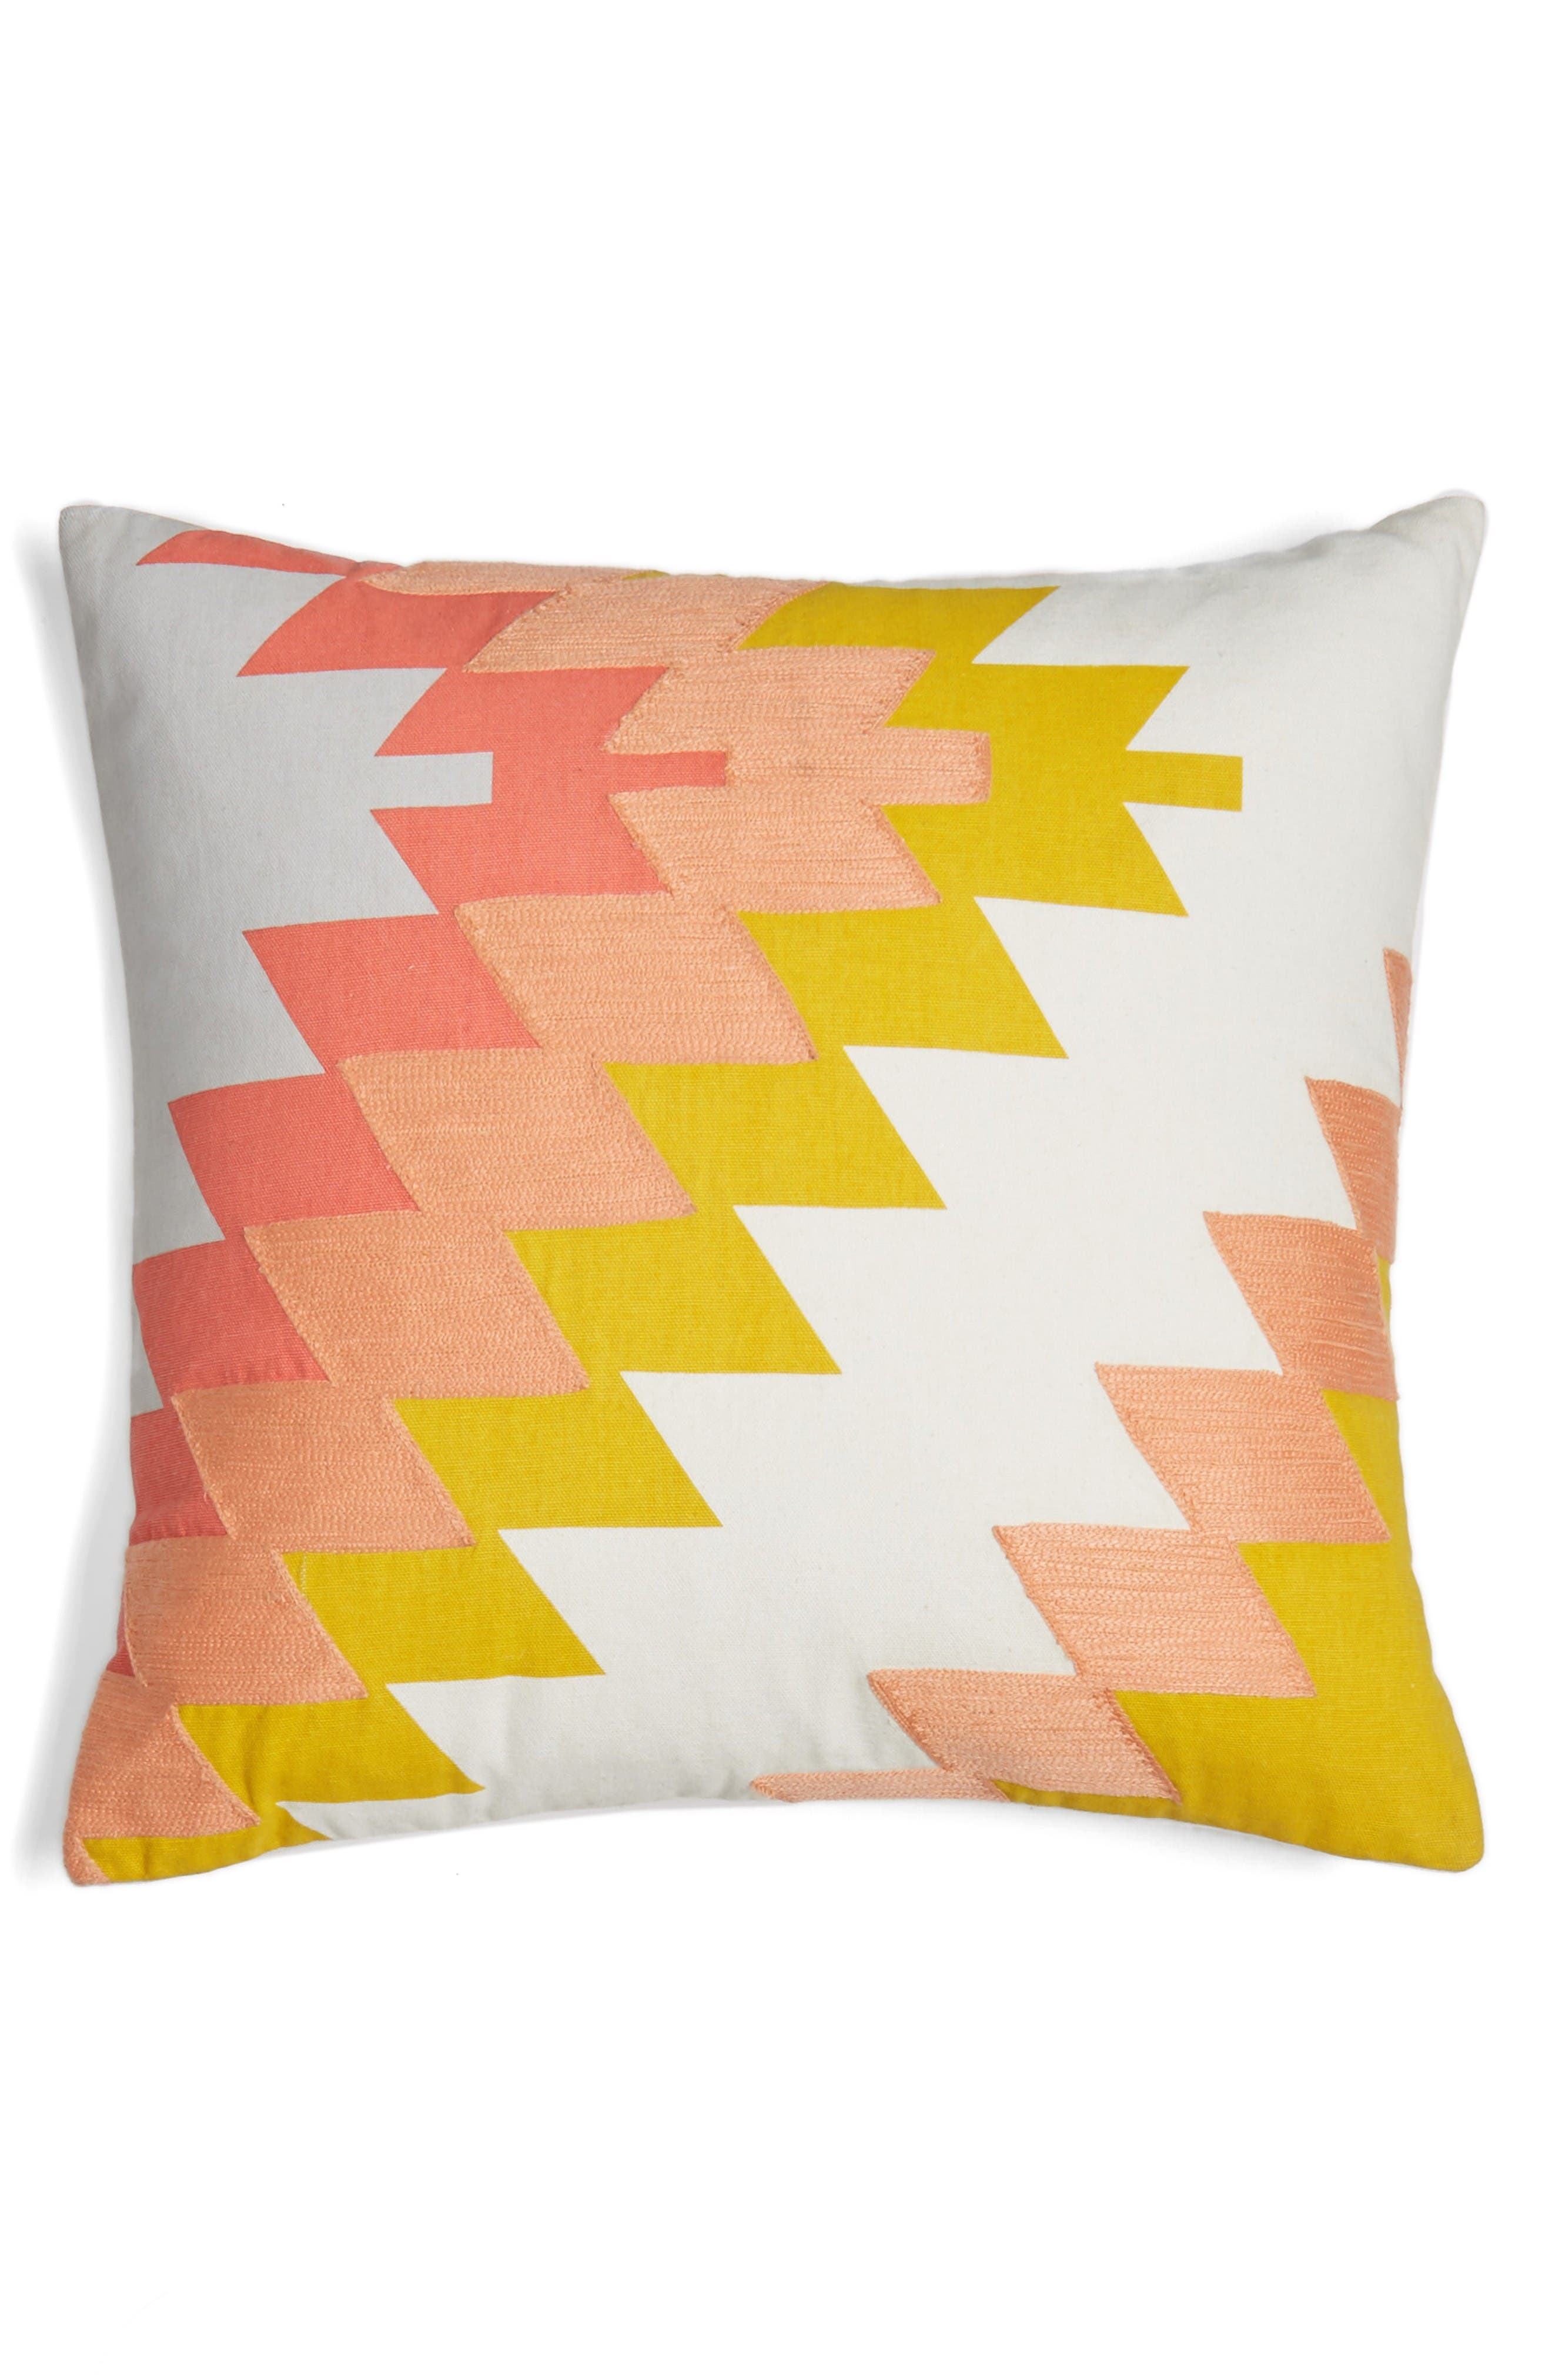 Alternate Image 1 Selected - Nordstrom at Home Kilm Graphic Accent Pillow